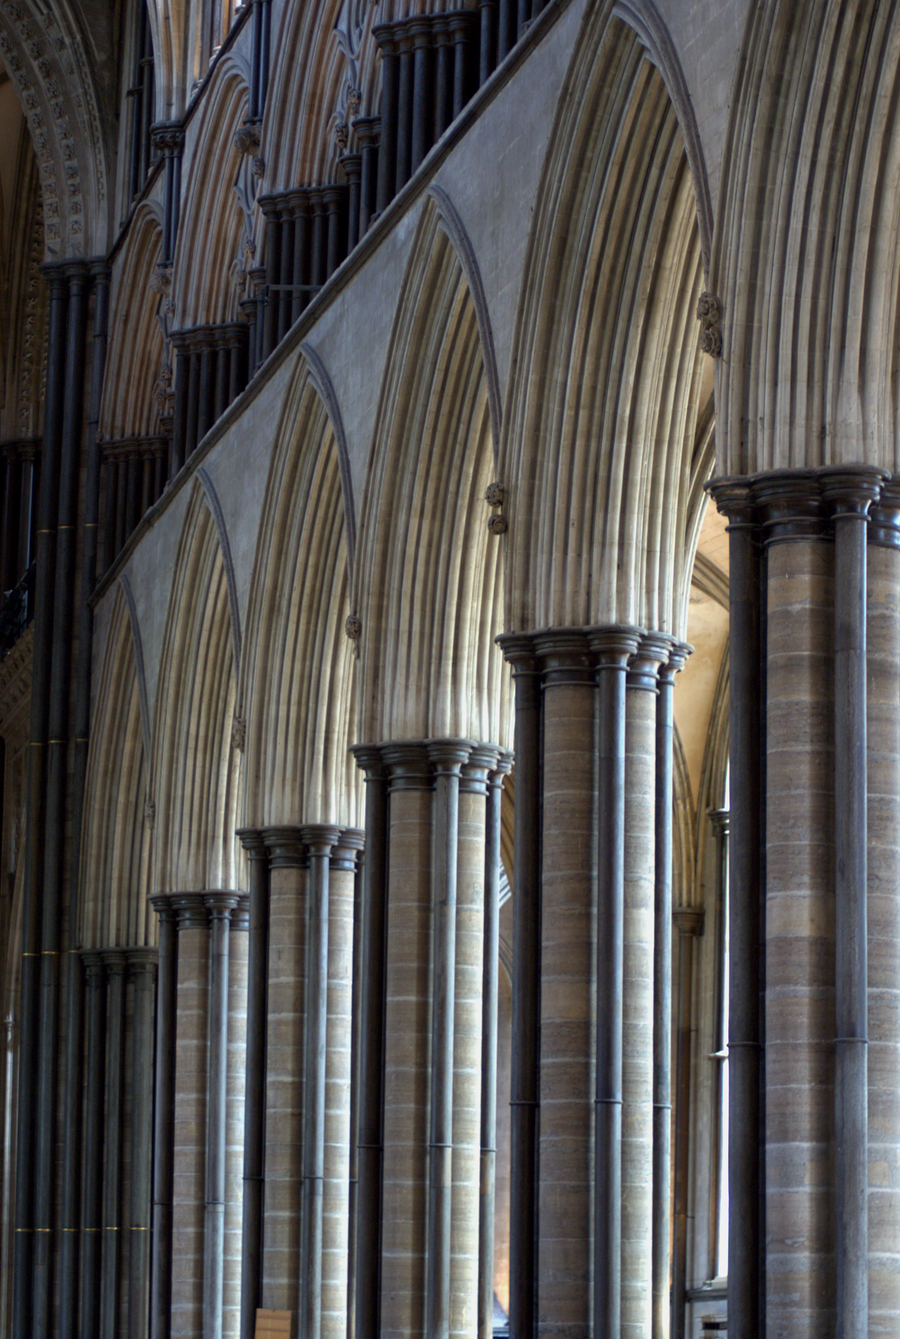 Salisbury-cathedral-columns.png